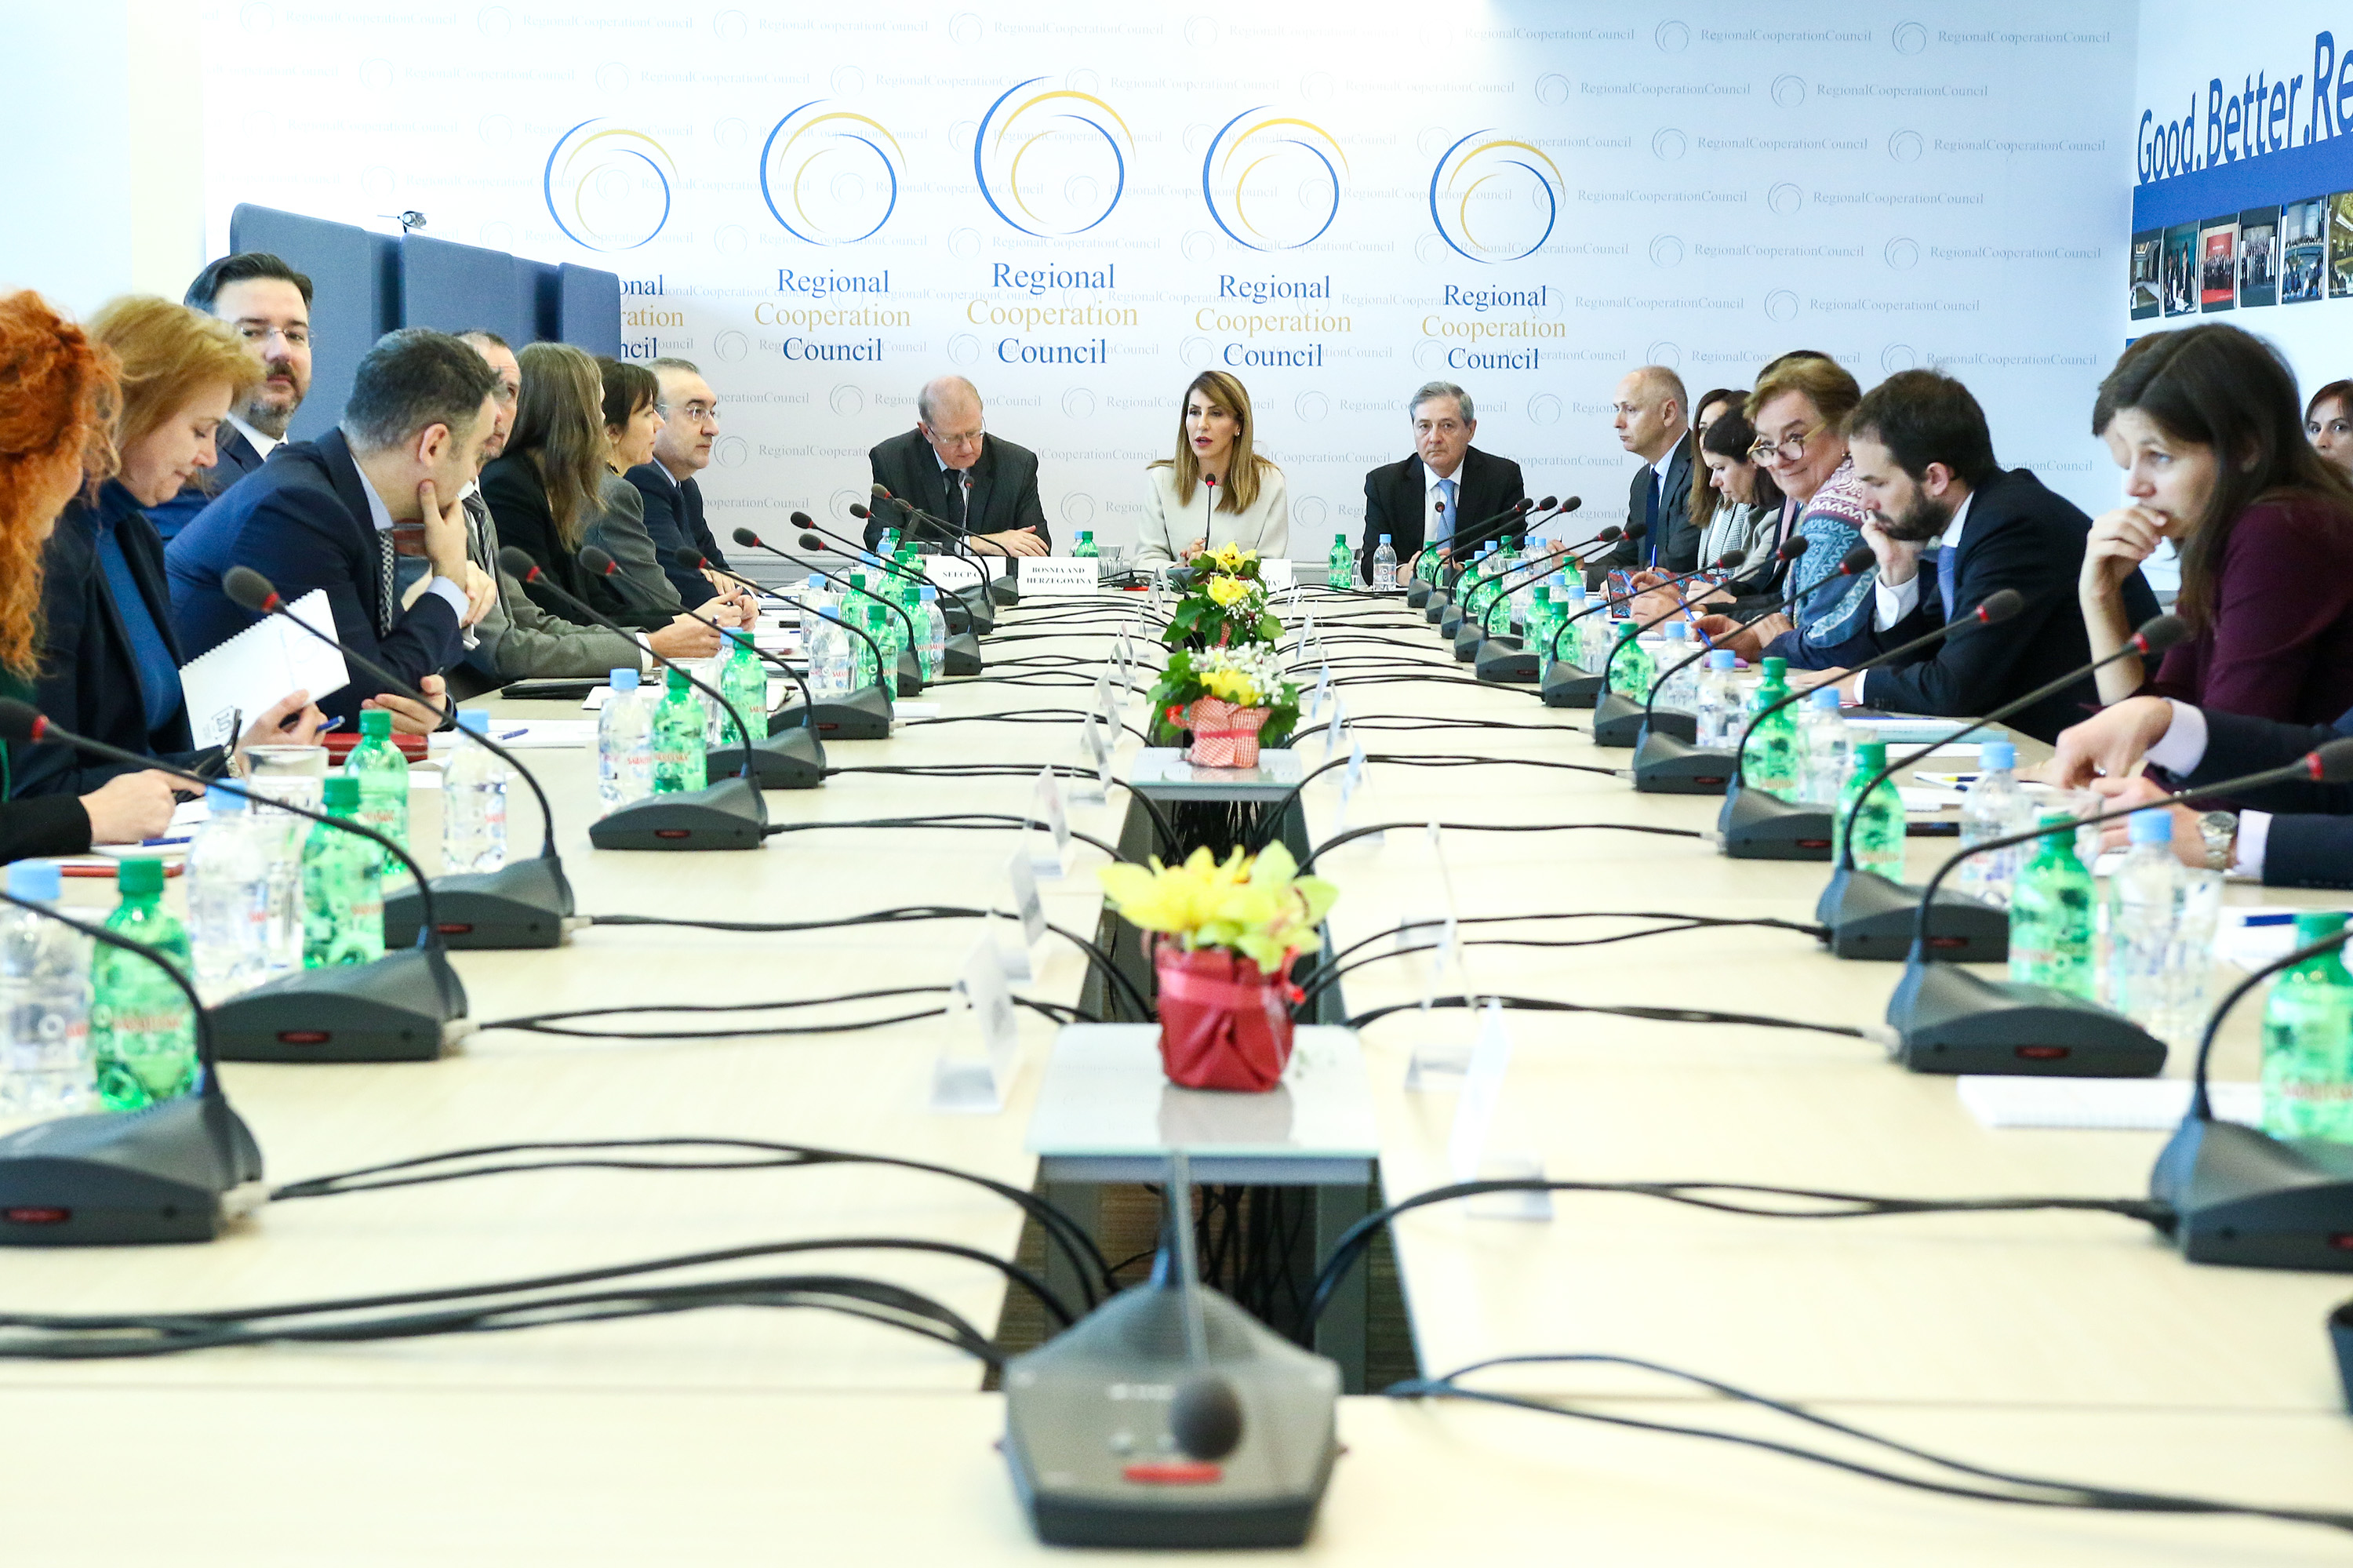 RCC Board met for the 36th time with the new RCC Secretary General, Majlinda Bregu, chairing the meeting for the first time, in Sarajevo on 14 March 2019 (Photo: RCC/Armin Durgut)